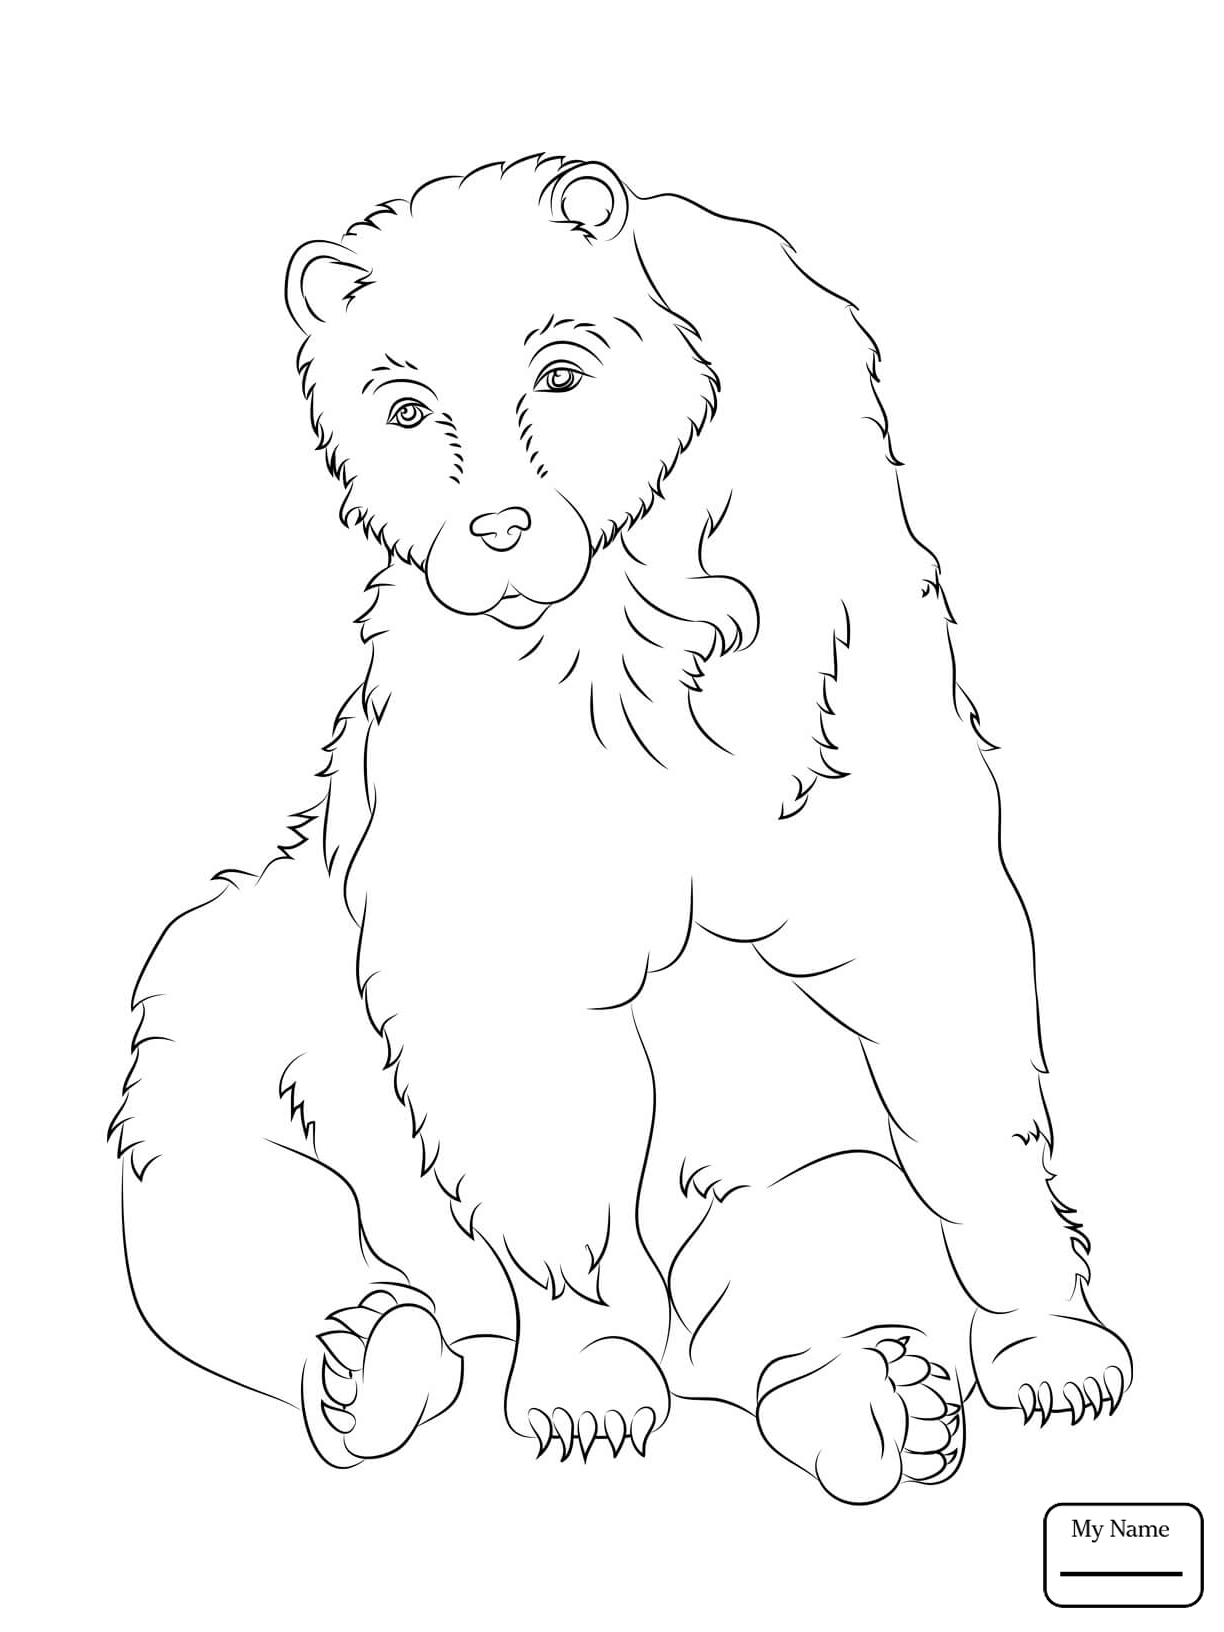 Polar Bear Outline Drawing at GetDrawings.com | Free for personal ...